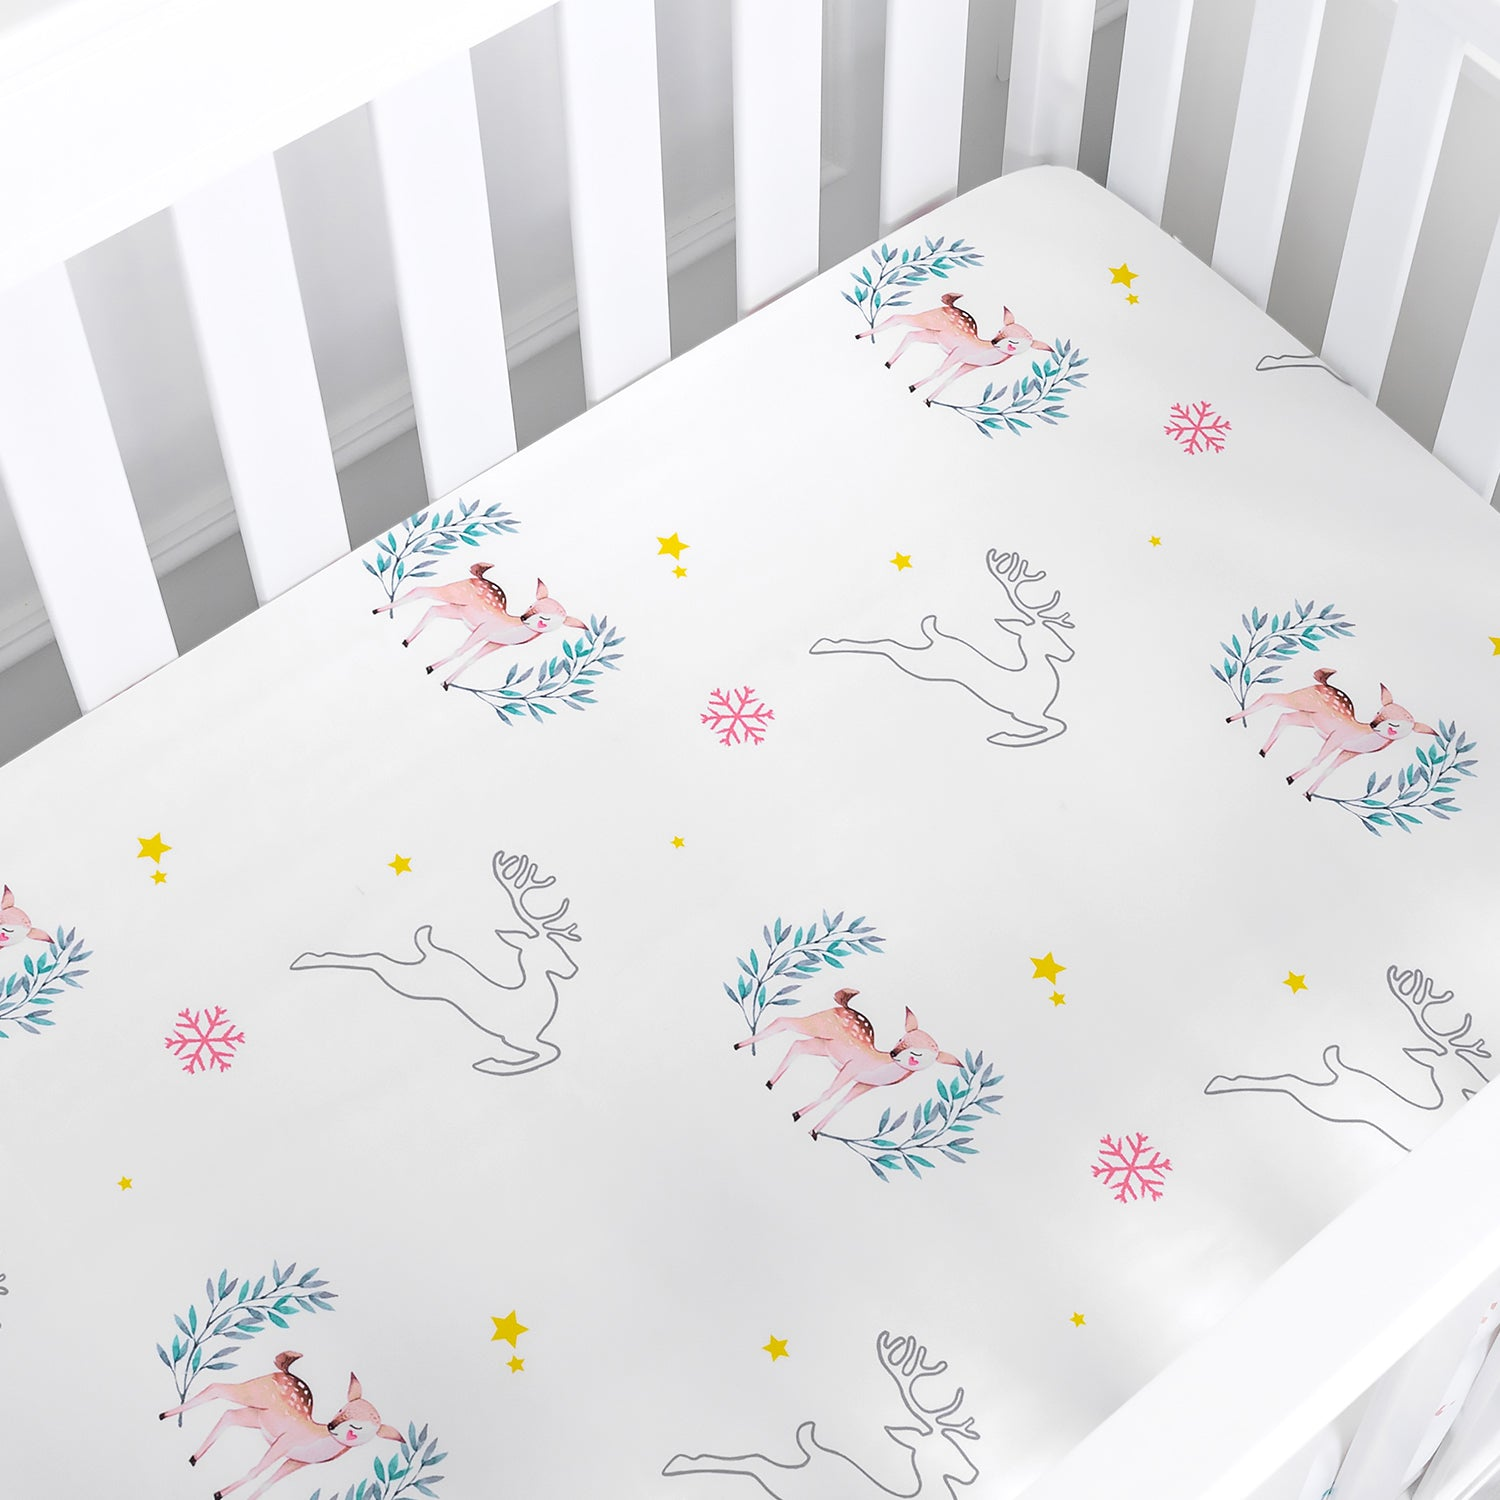 Microfiber Deer Crib Sheets Set for Boys & Girls - Mystery Reindeer